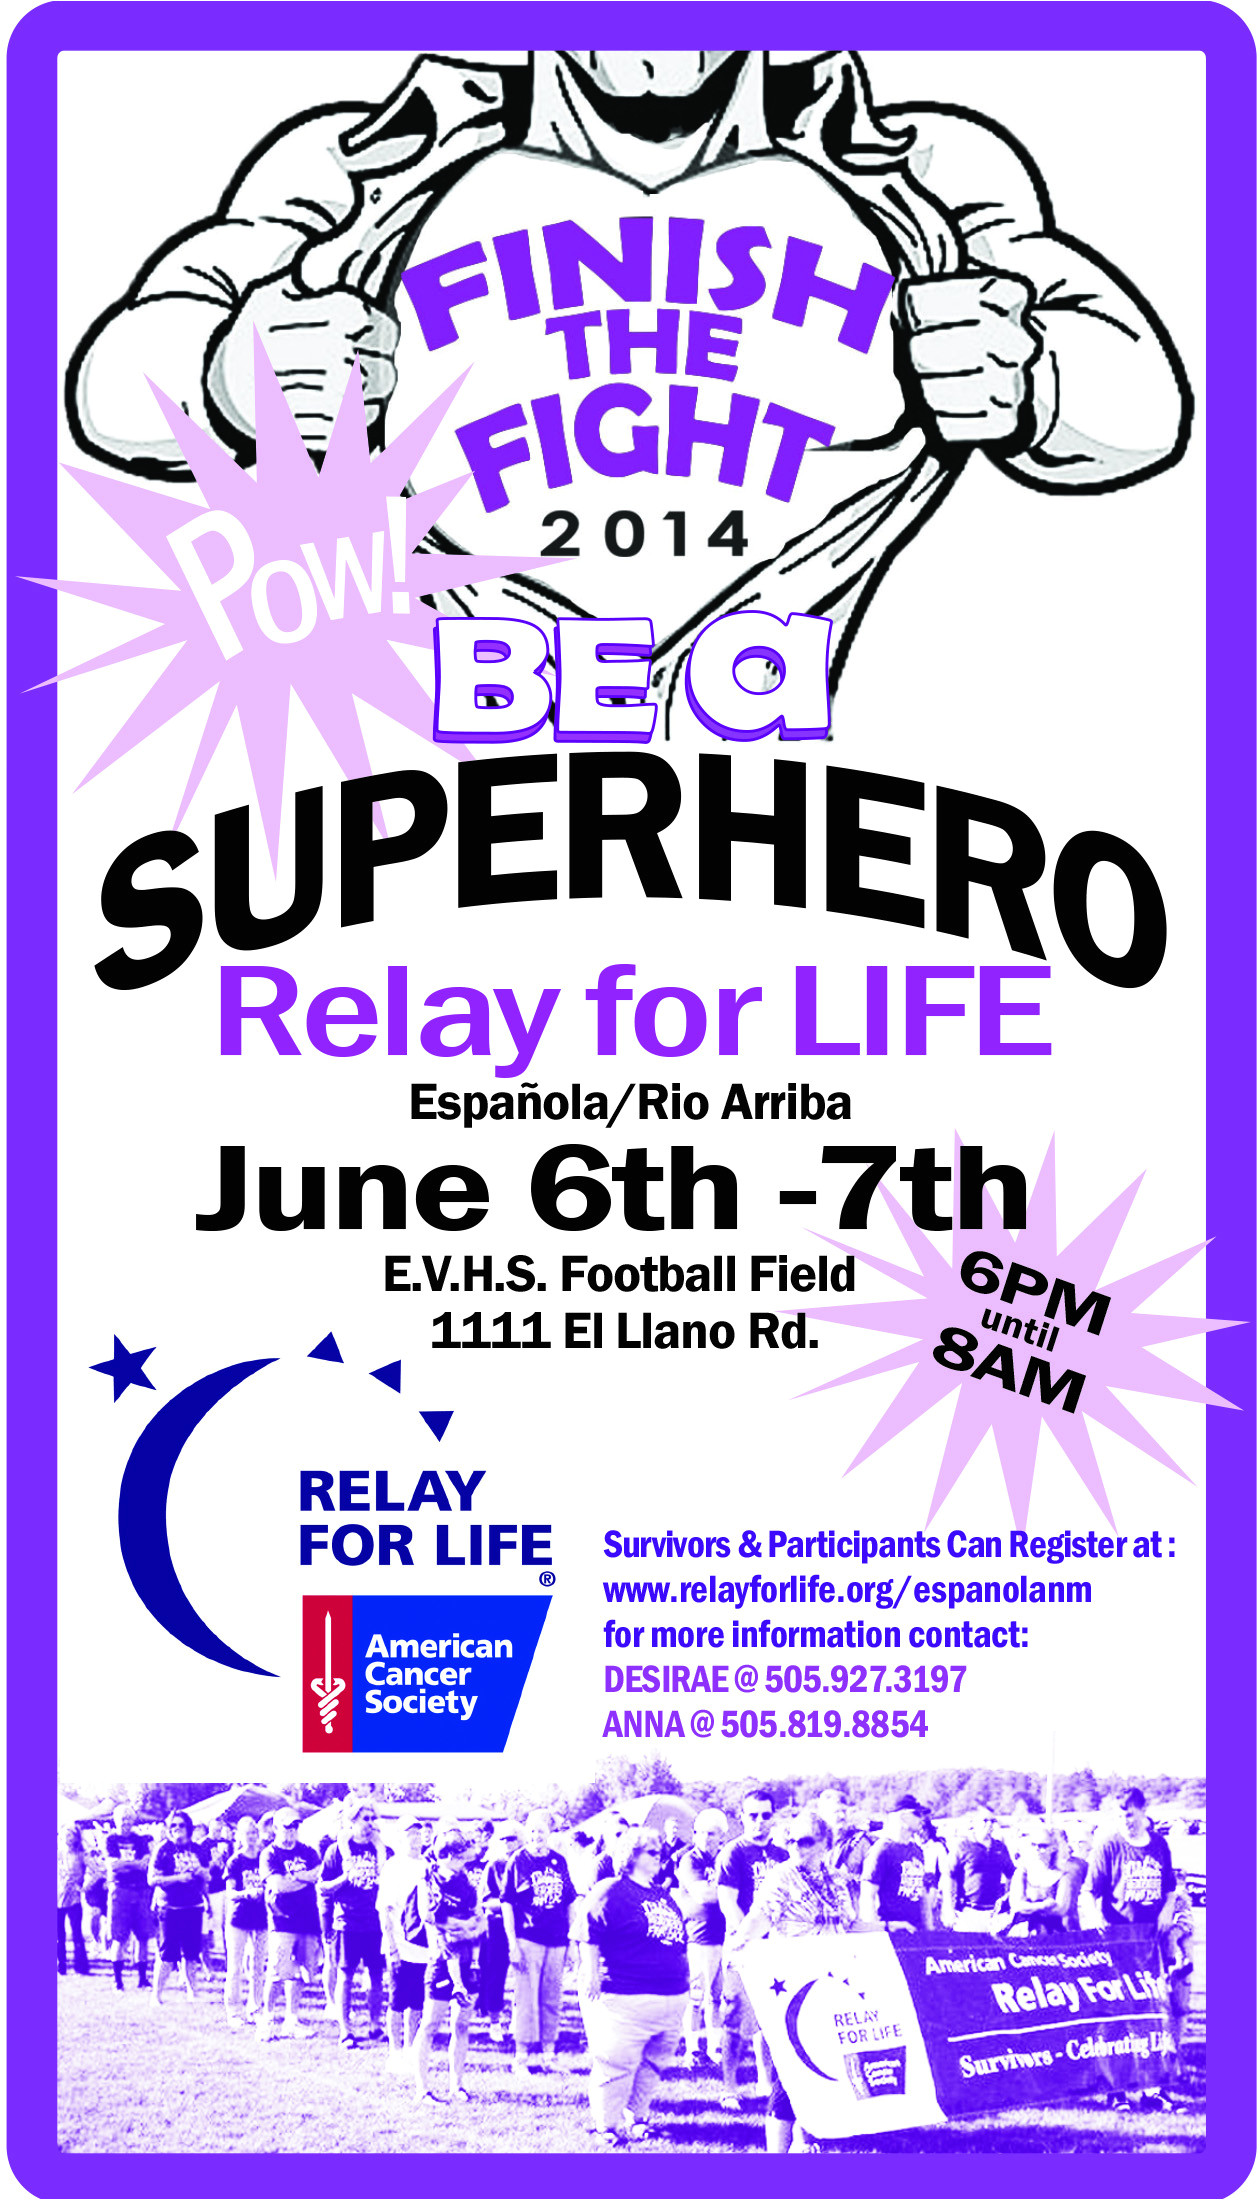 relay for life superhero themed advertisement for the local